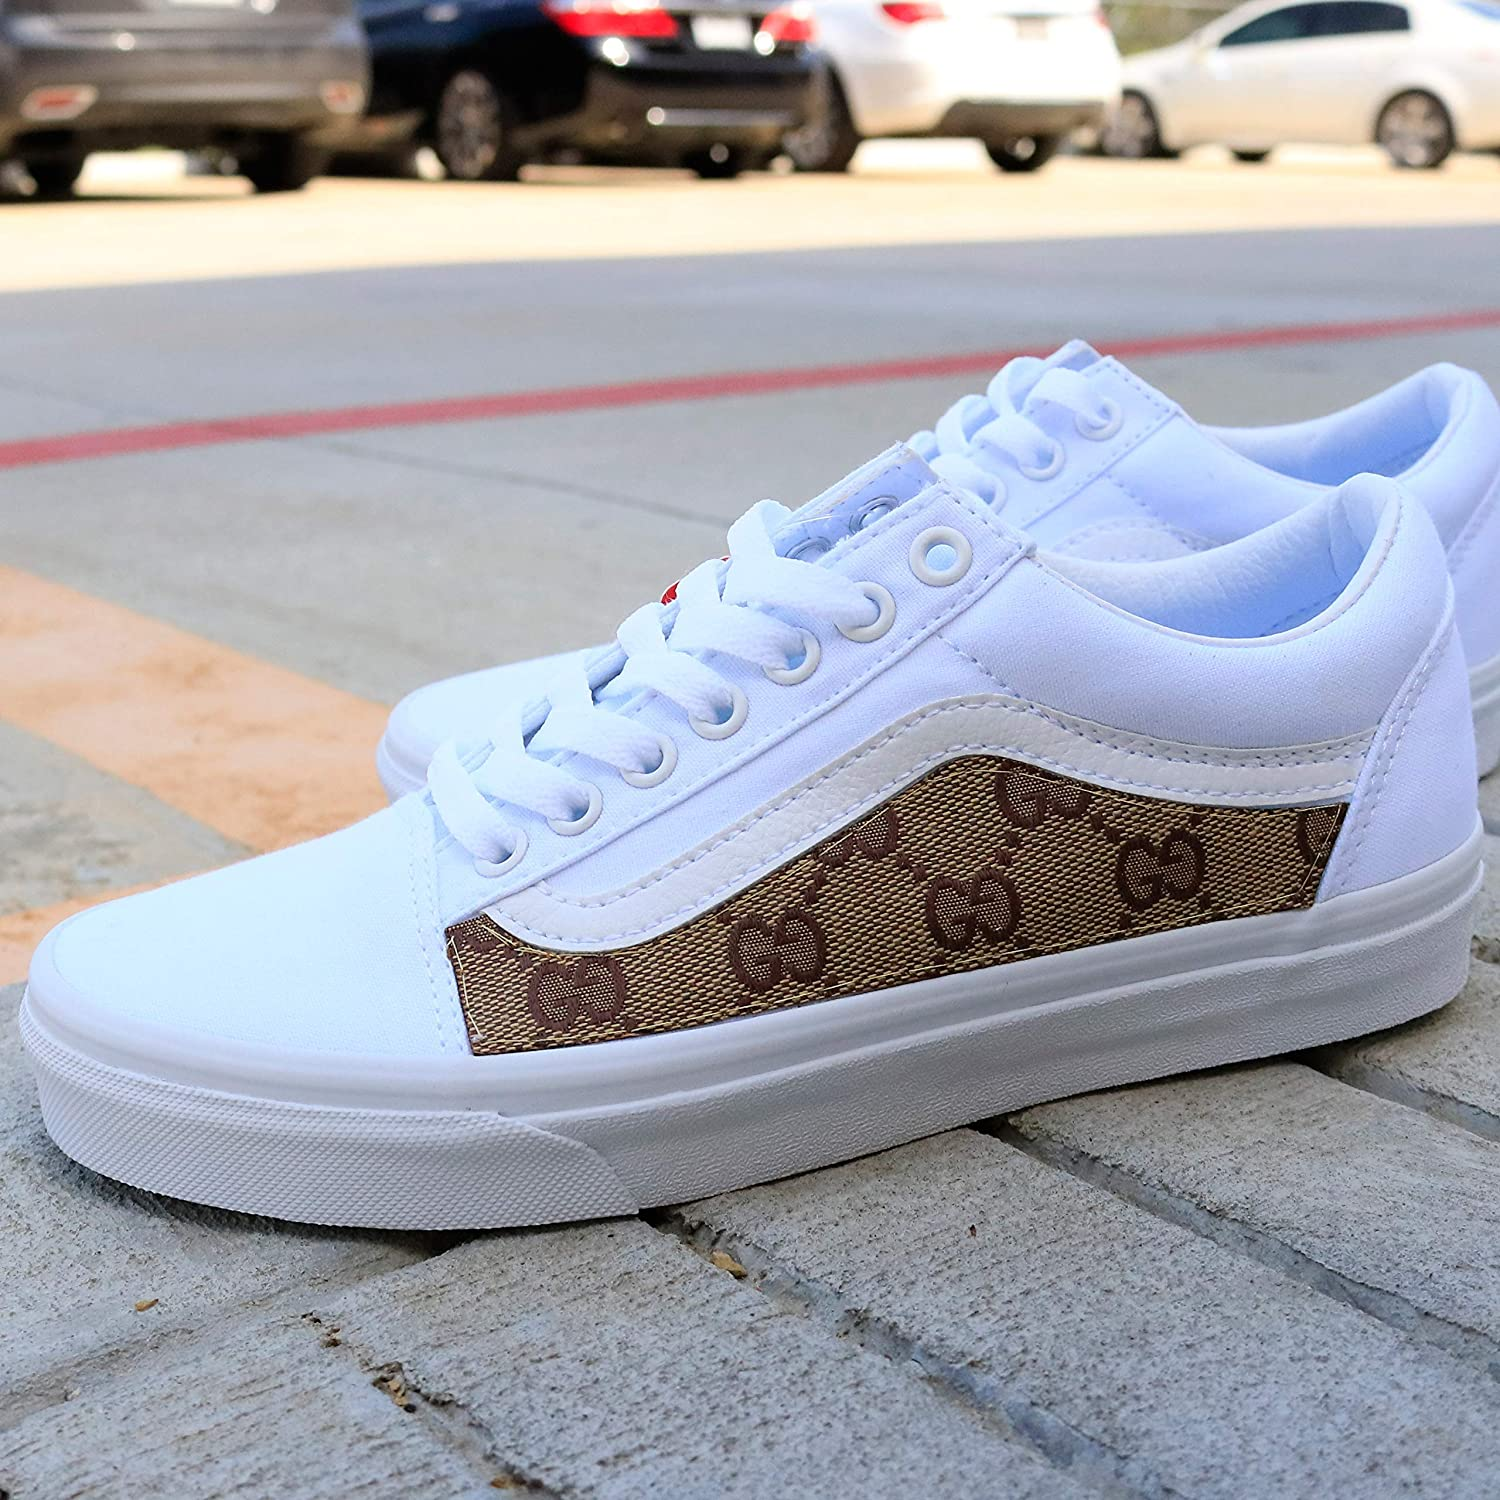 b3b561413dcb8 Vans White Old Skool x GG Pattern Custom Handmade Uni-Sex Shoes By Patch  Collection